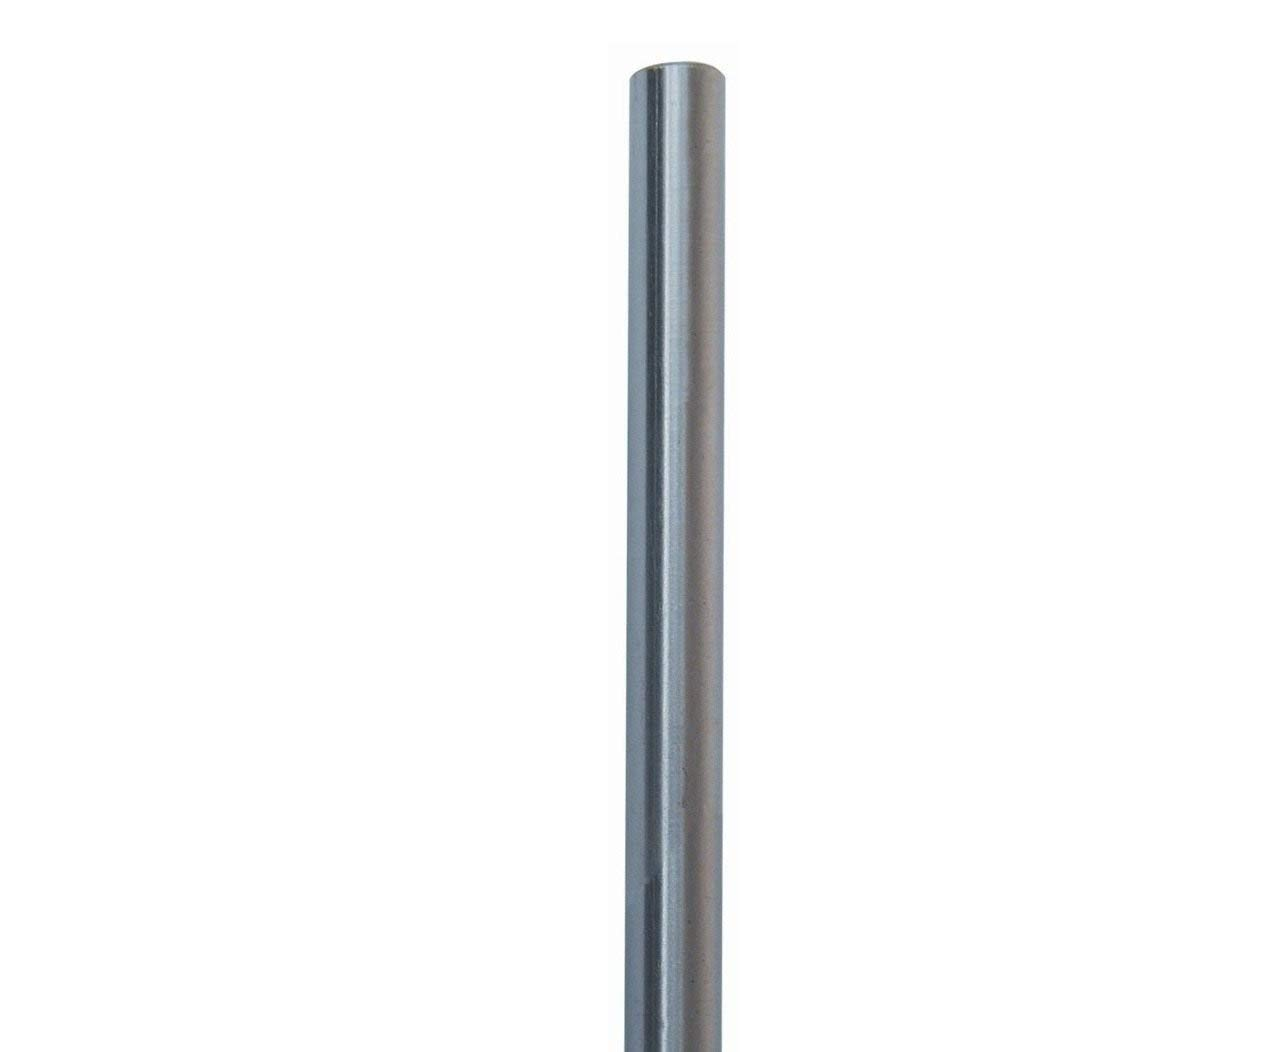 Drill America .7460 High Speed Steel Straight Shank Chucking Reamer DWR Series